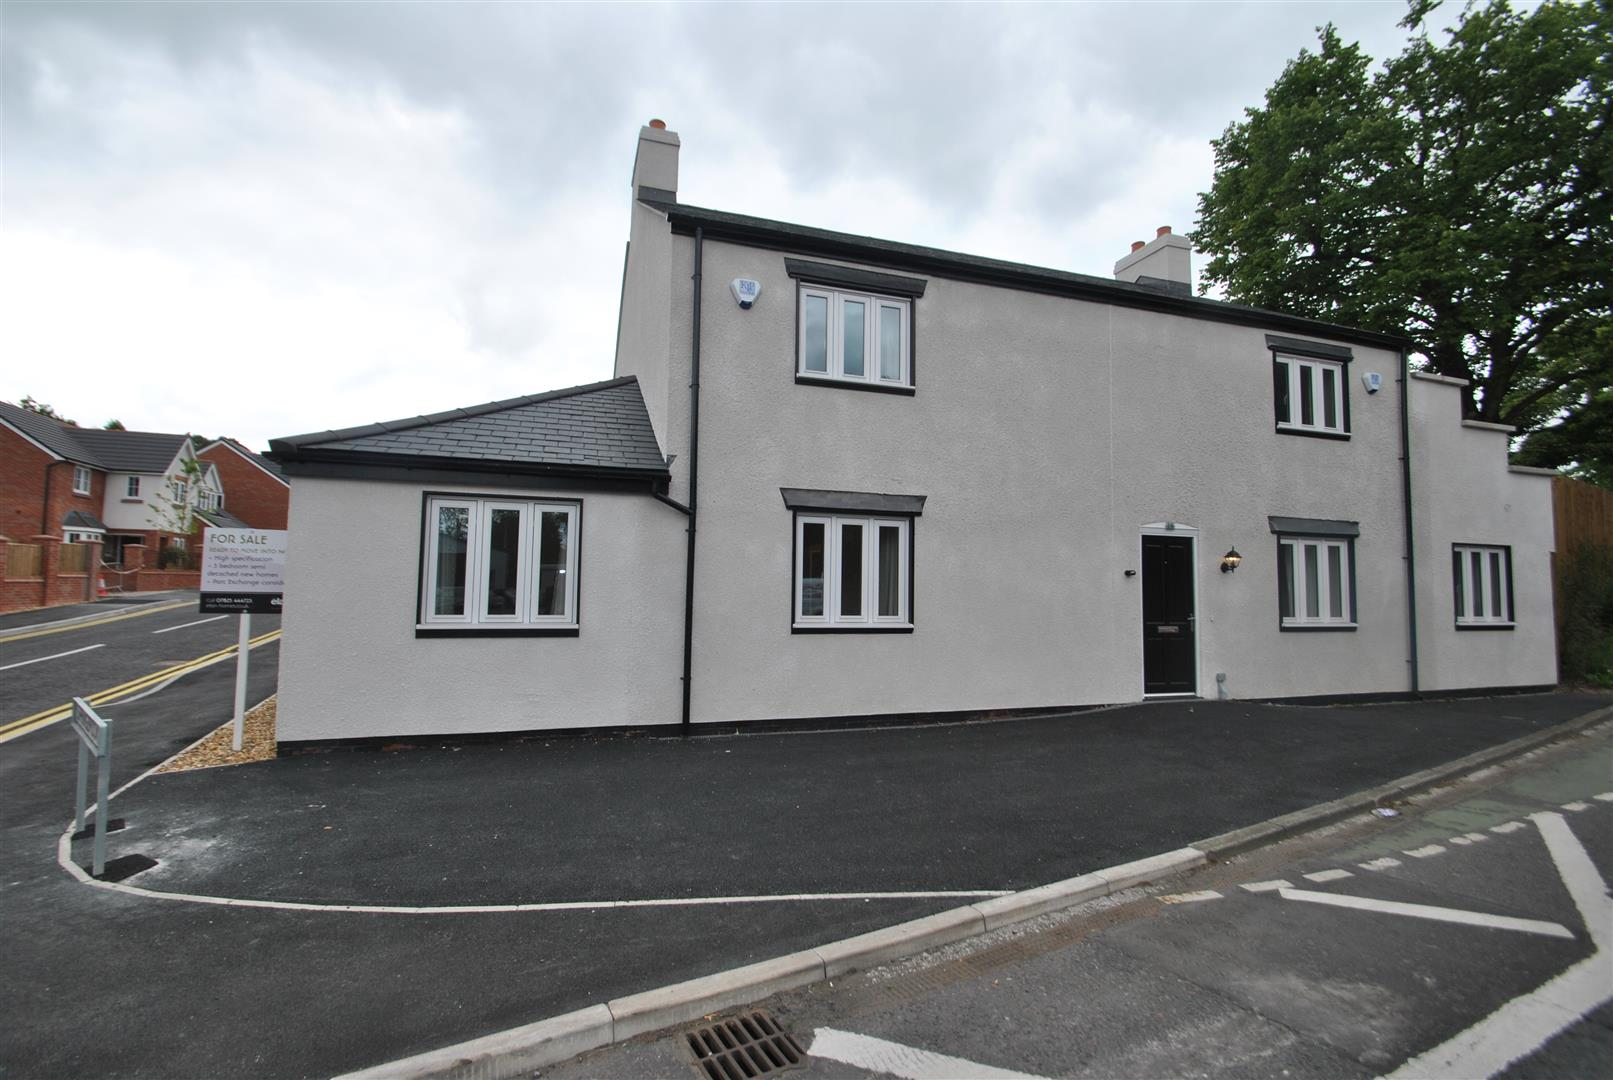 3 Bedrooms Property for sale in Chester Road, Walton, Warrington